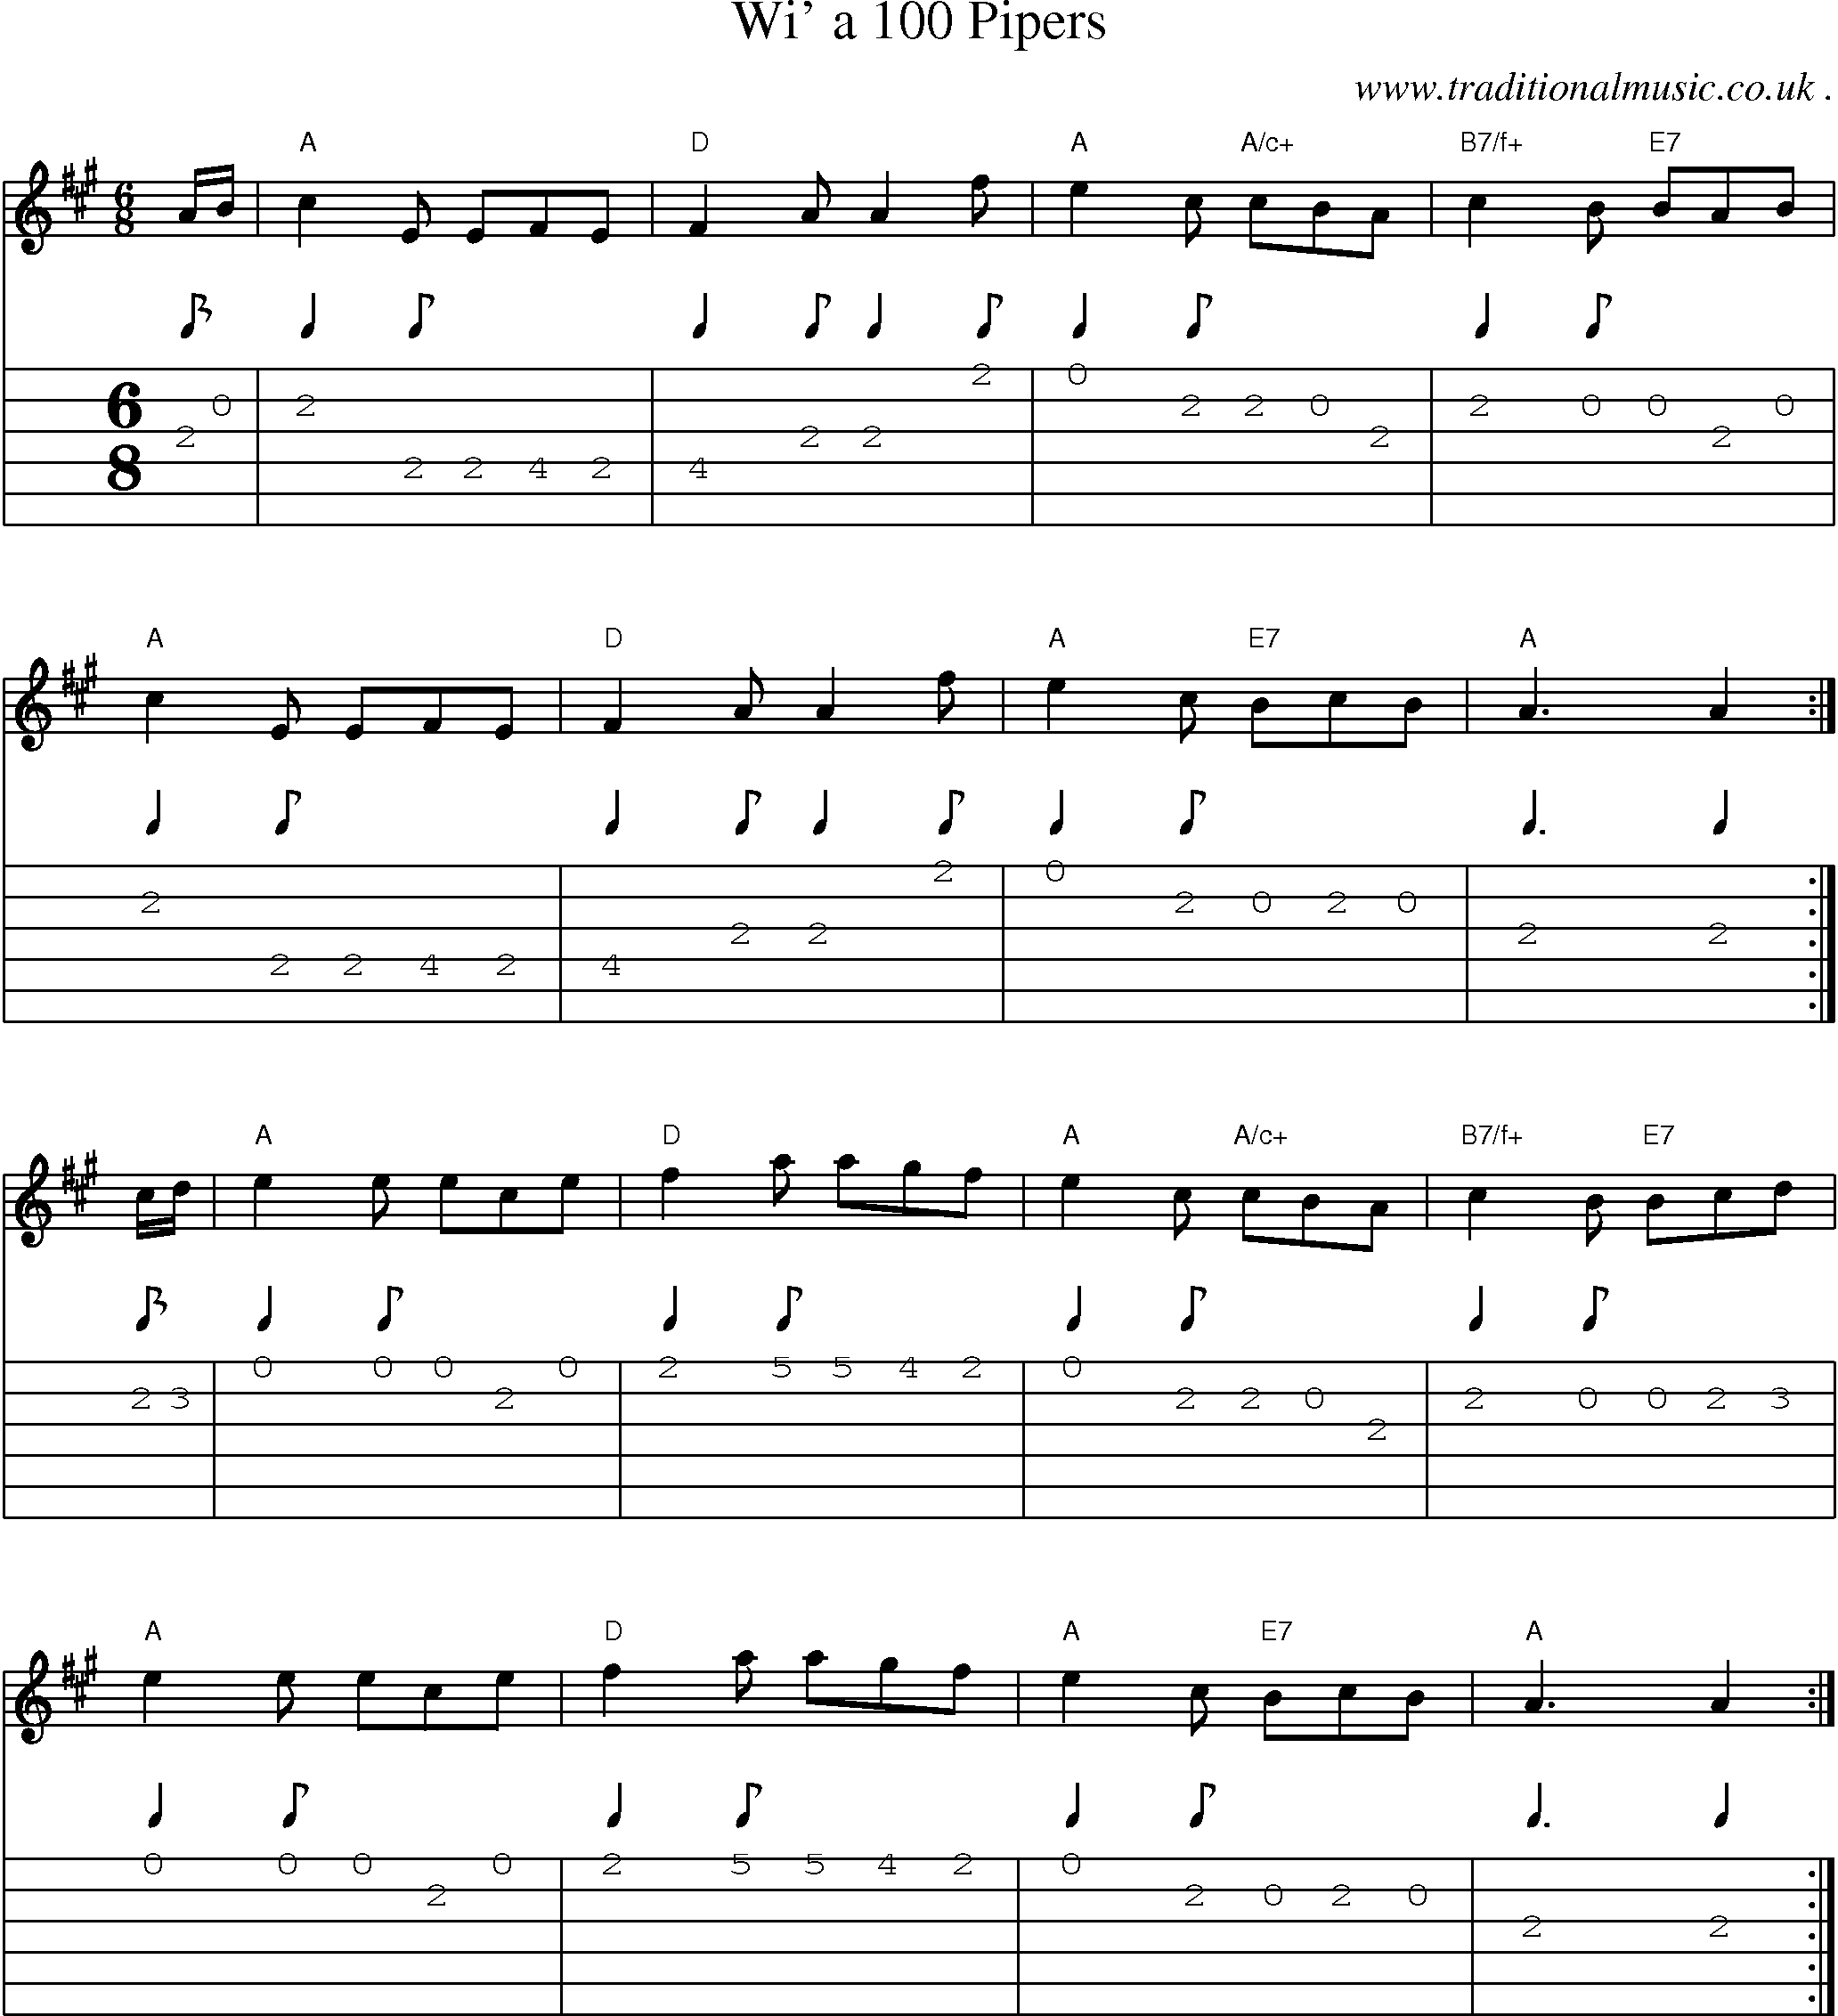 Scottish Tune, Sheetmusic, Midi, Mp3, Guitar chords u0026 tabs: Wi A 100 Pipers